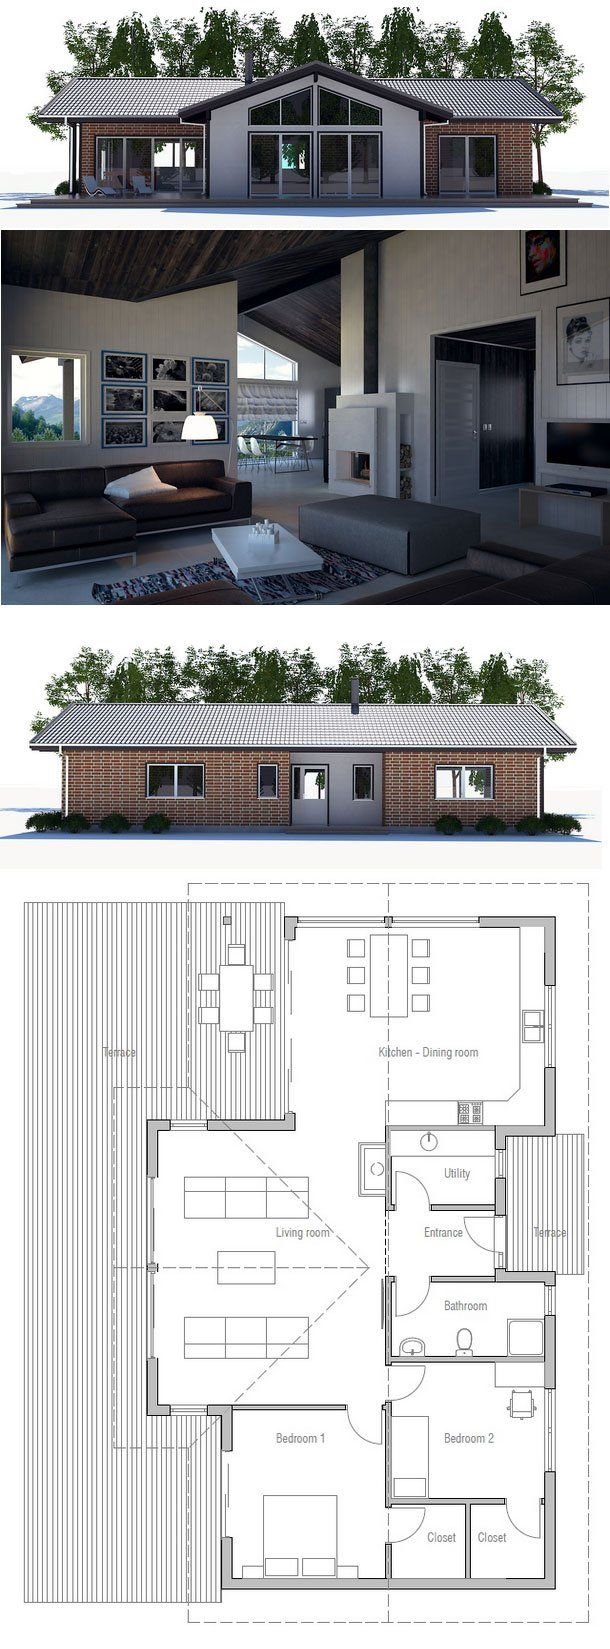 Small house plan with two bedrooms open